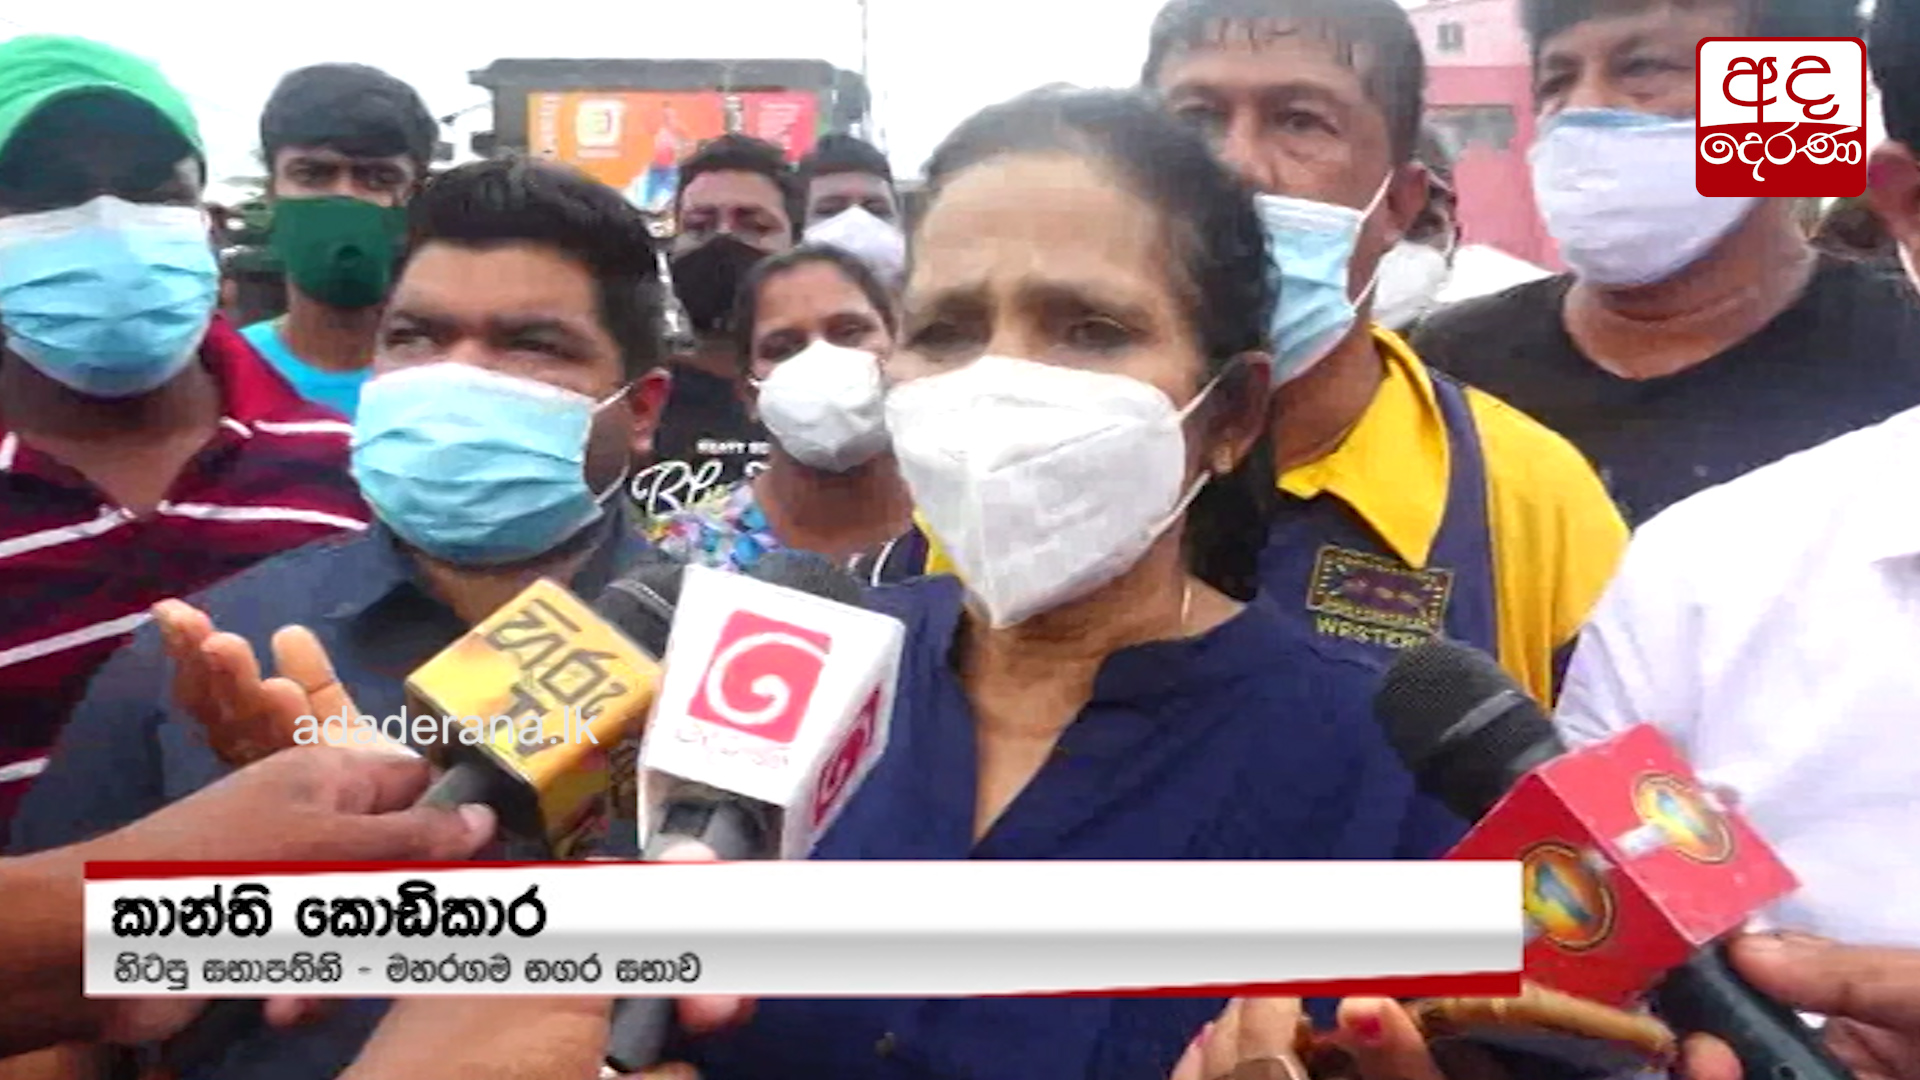 Temporary solution for protesting traders in Maharagama